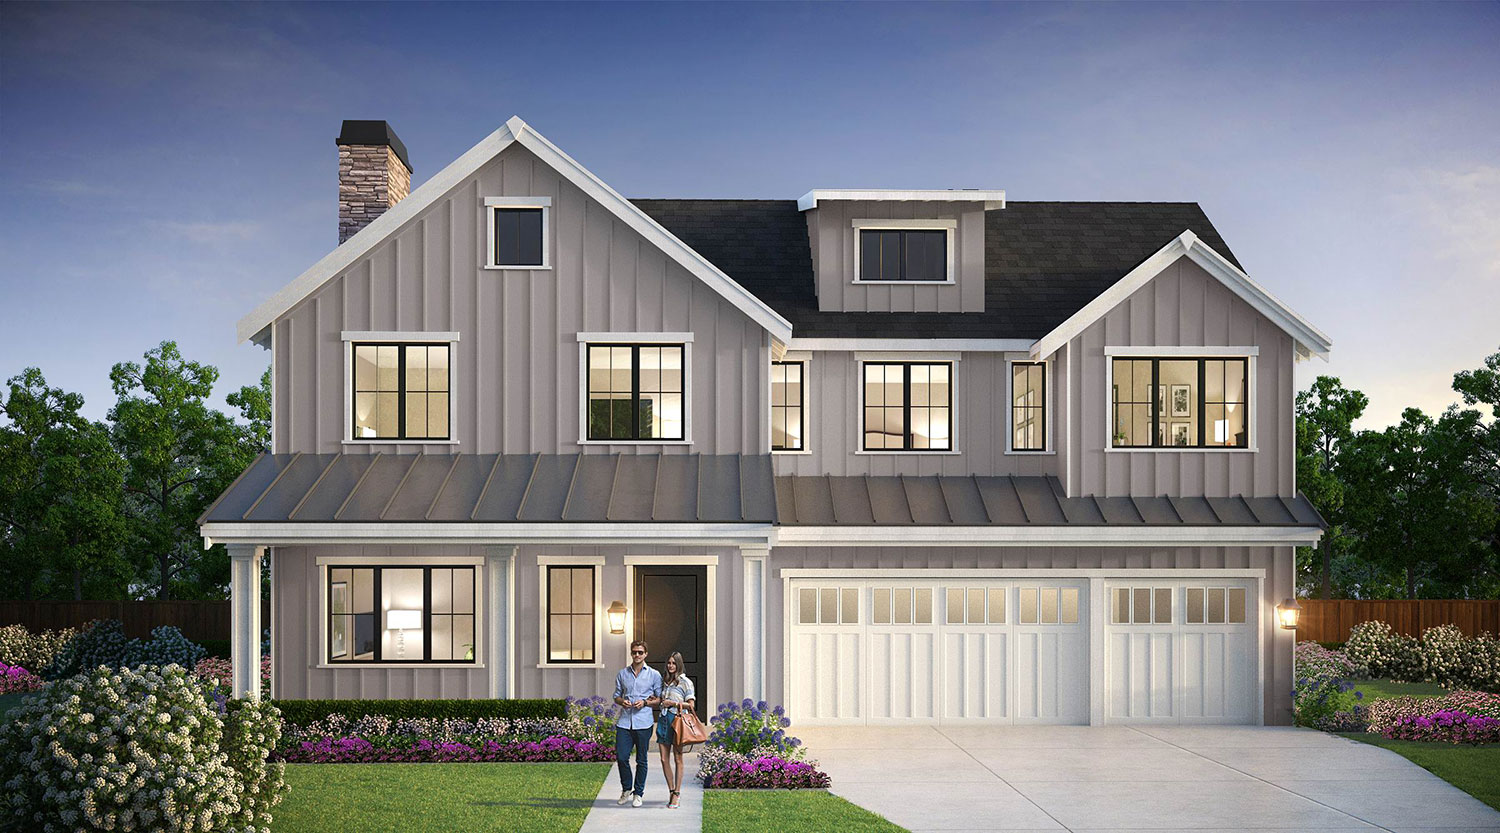 Discover The Very Finest In Luxury Living With This New Farmhouse Design By Bdr Fine Homes Boasting Over 4 300 Sf And Bedroom Suites Plus A Den